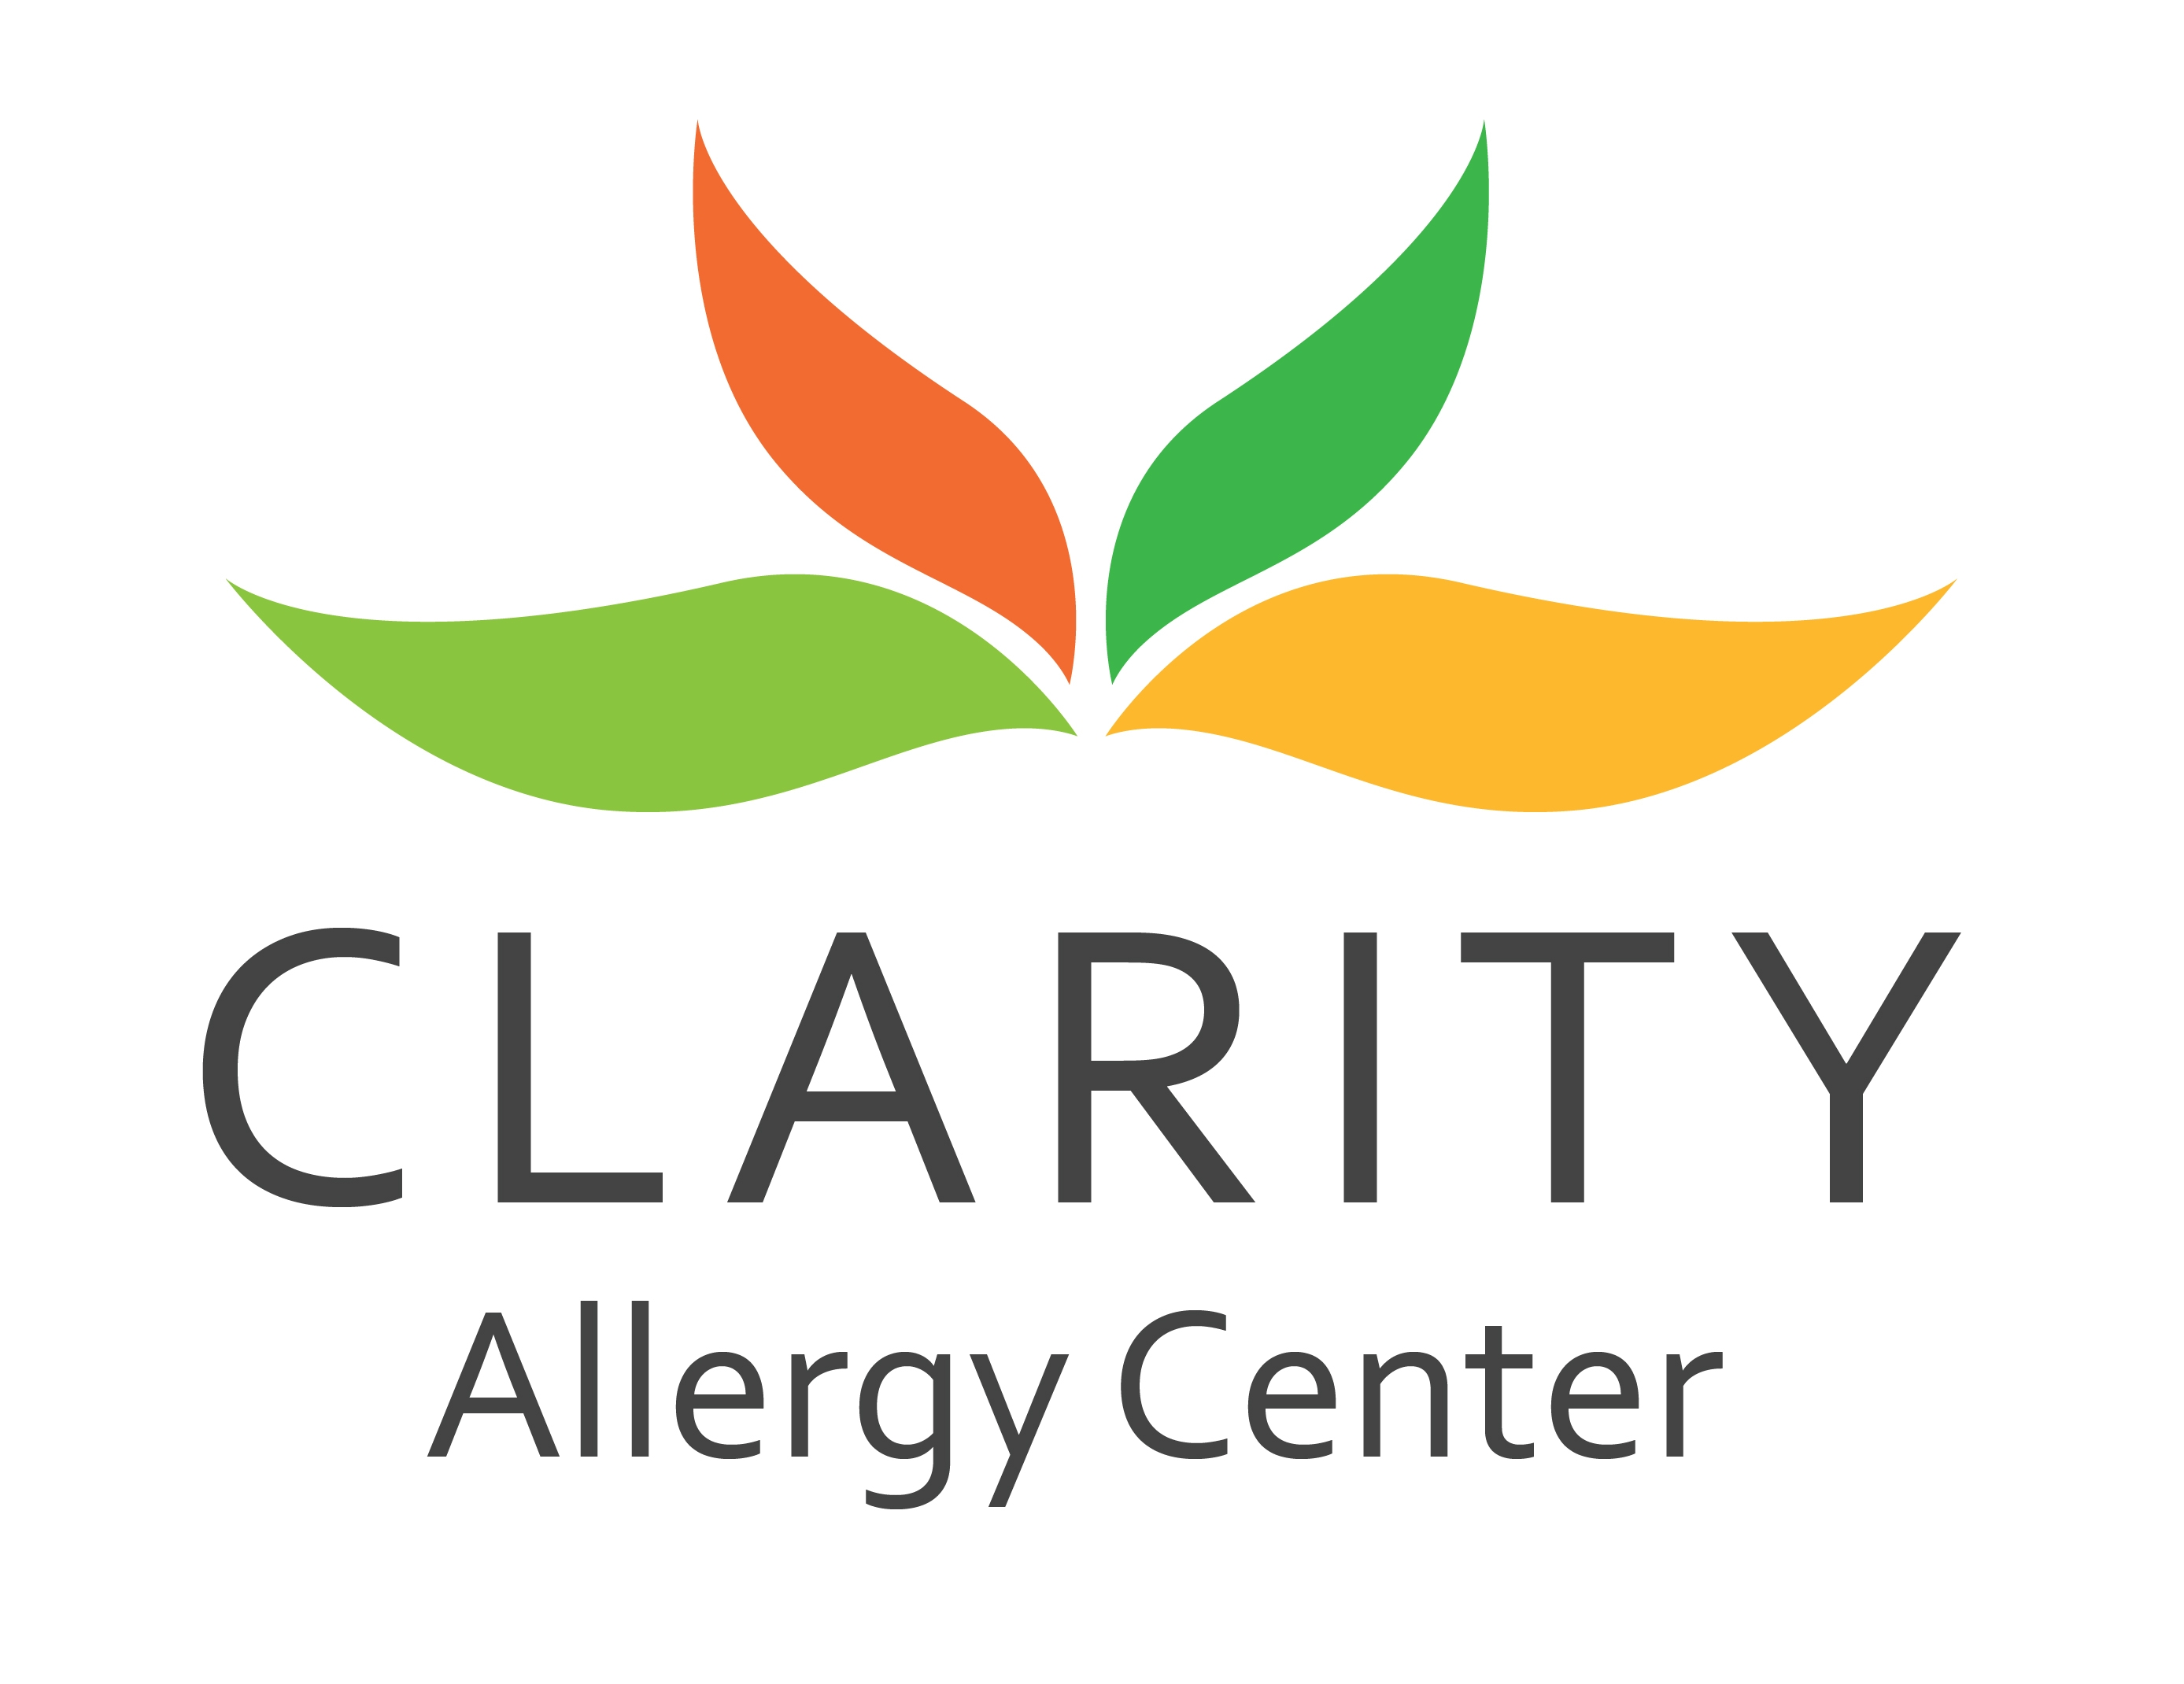 Clarity Allergy Center Logo